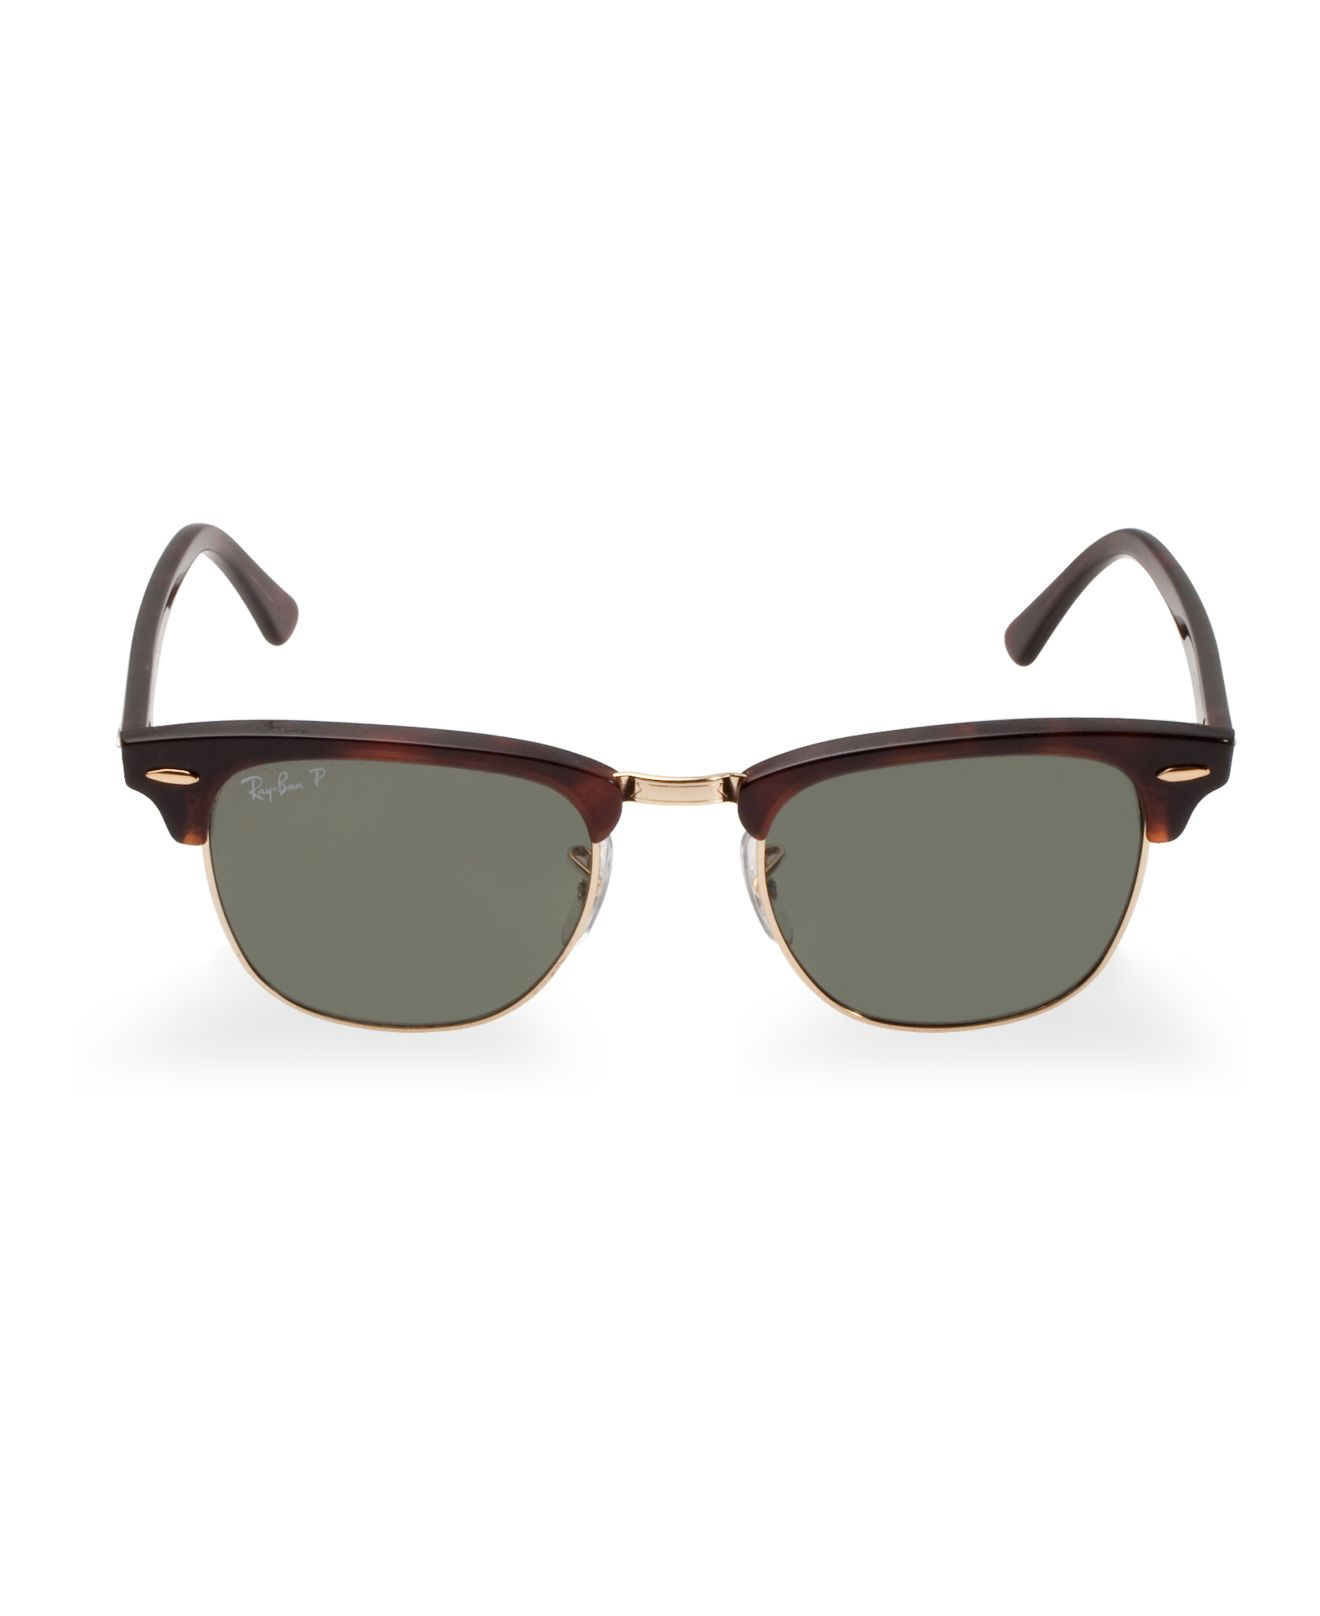 c2942a8a9e Best Ray Bans For Guys Only Crossword « Heritage Malta